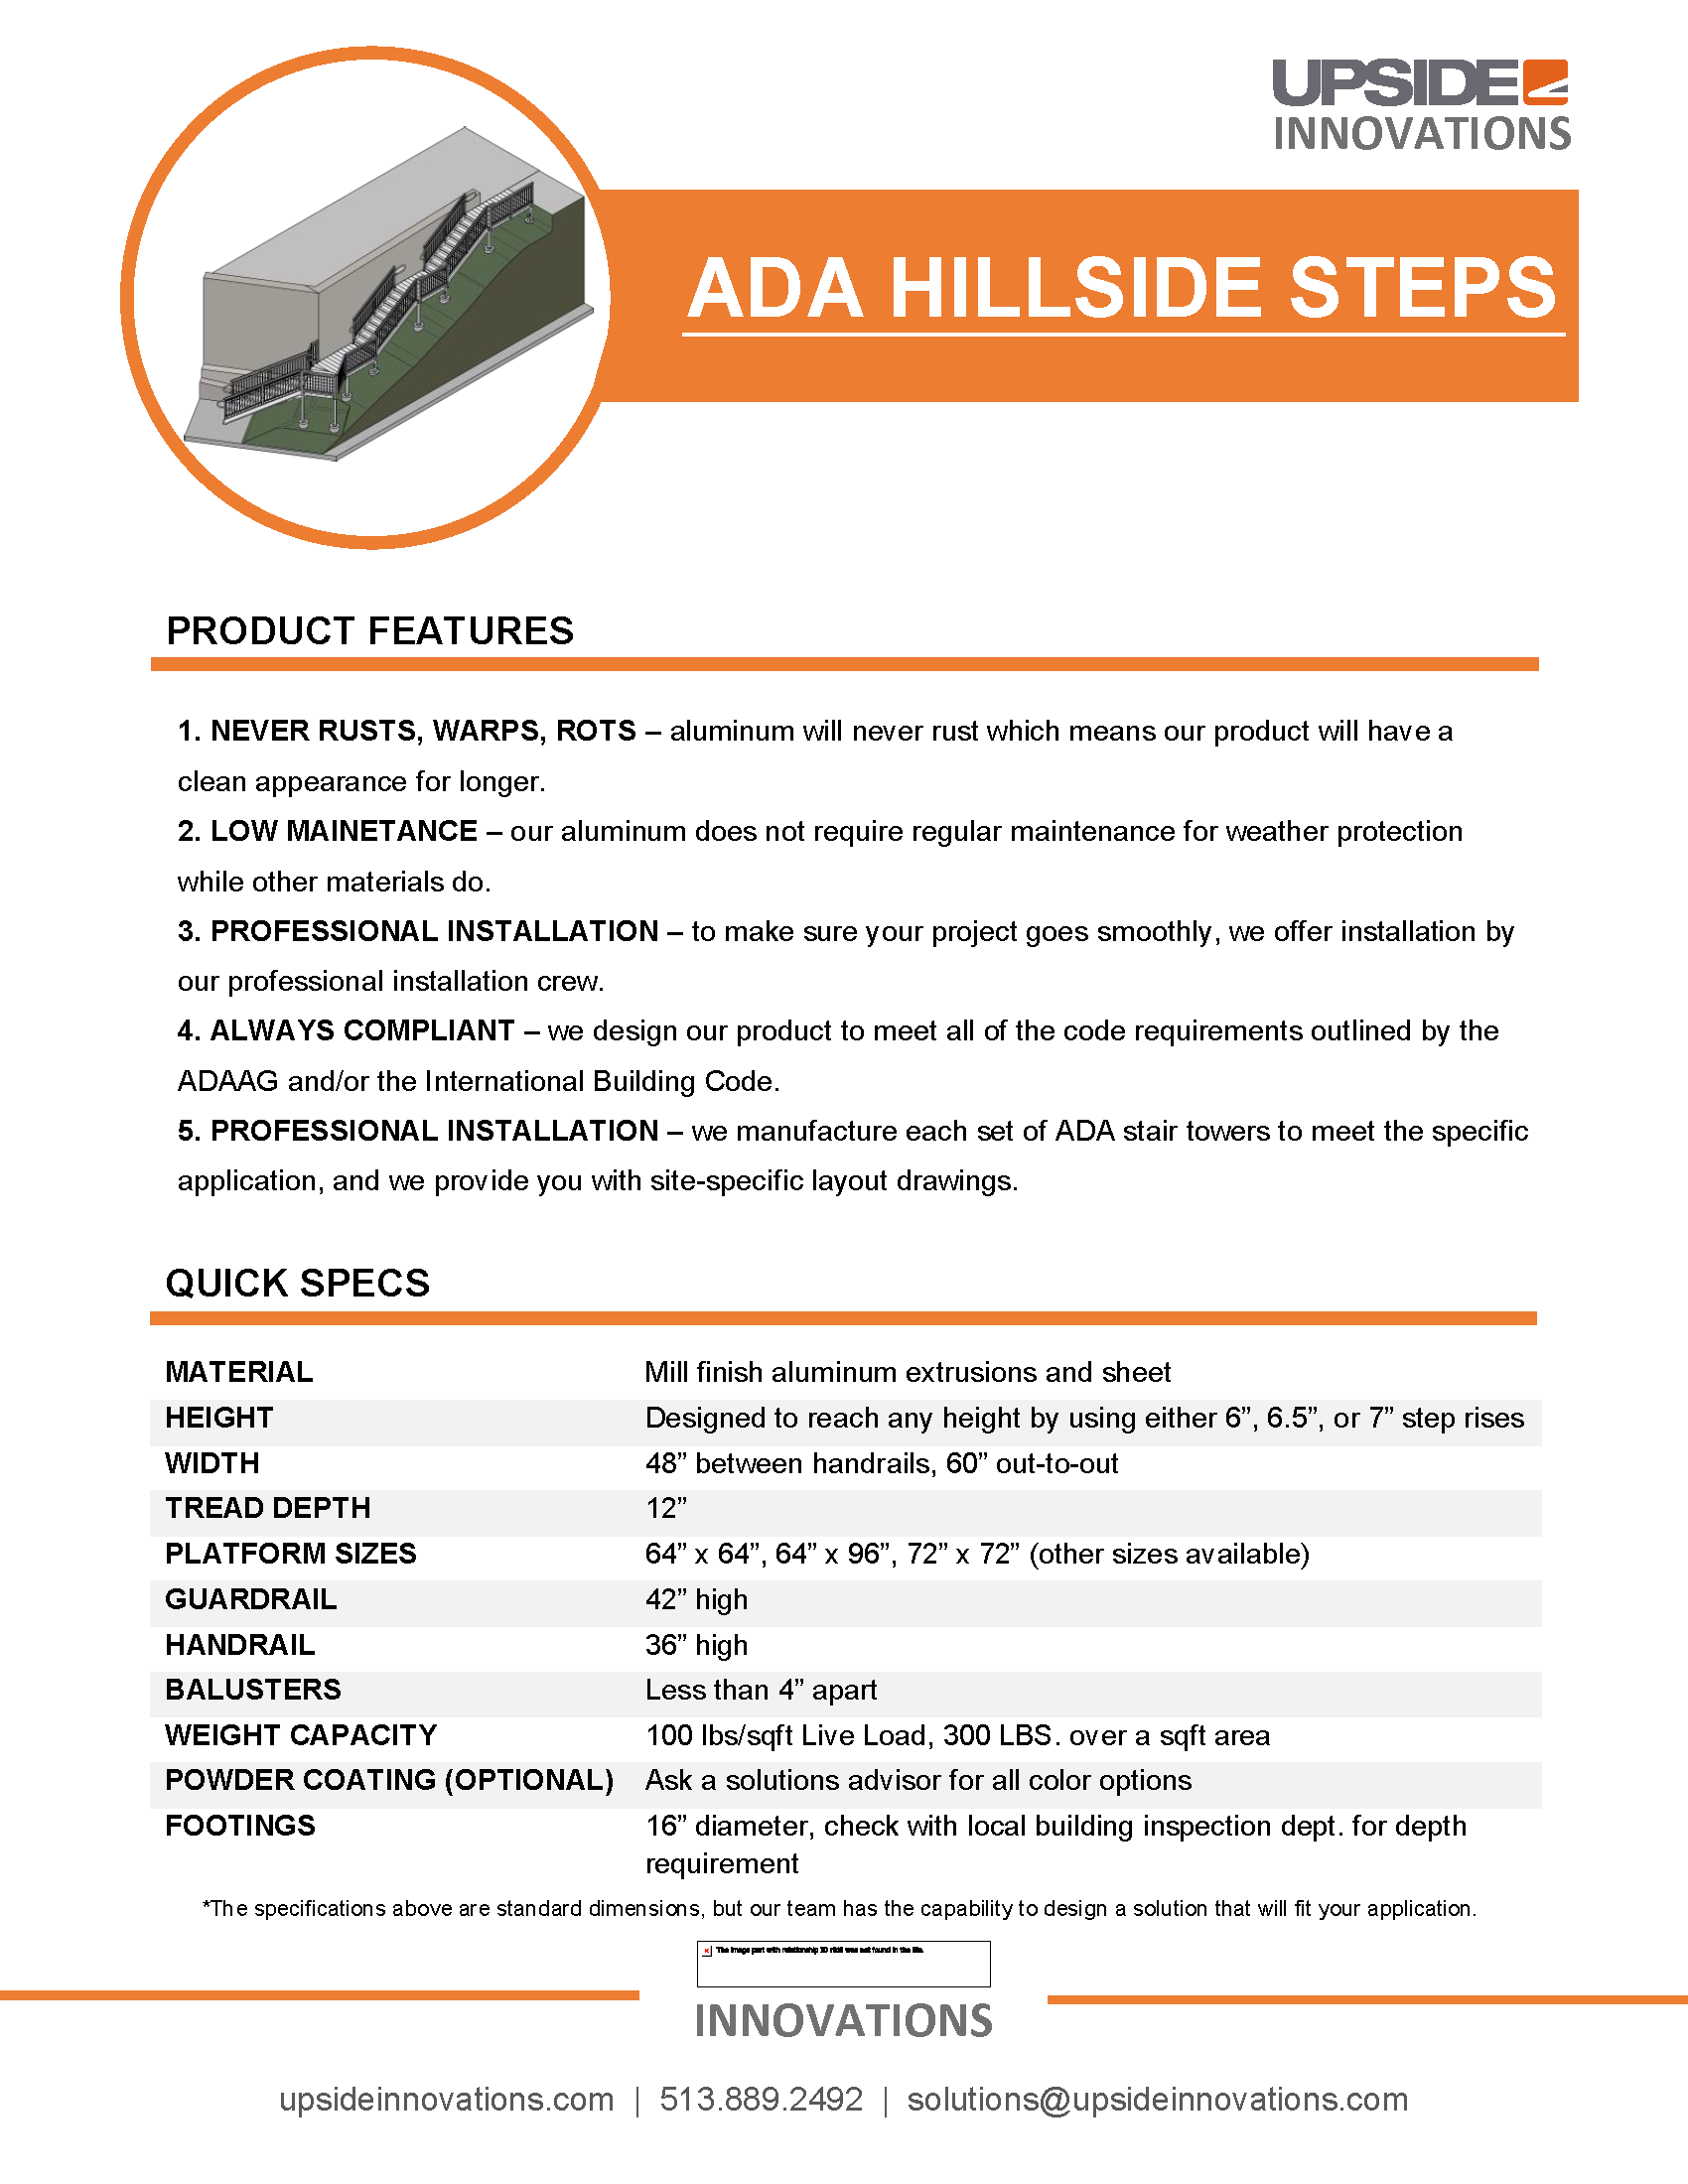 ADA Hillside Steps Specifications